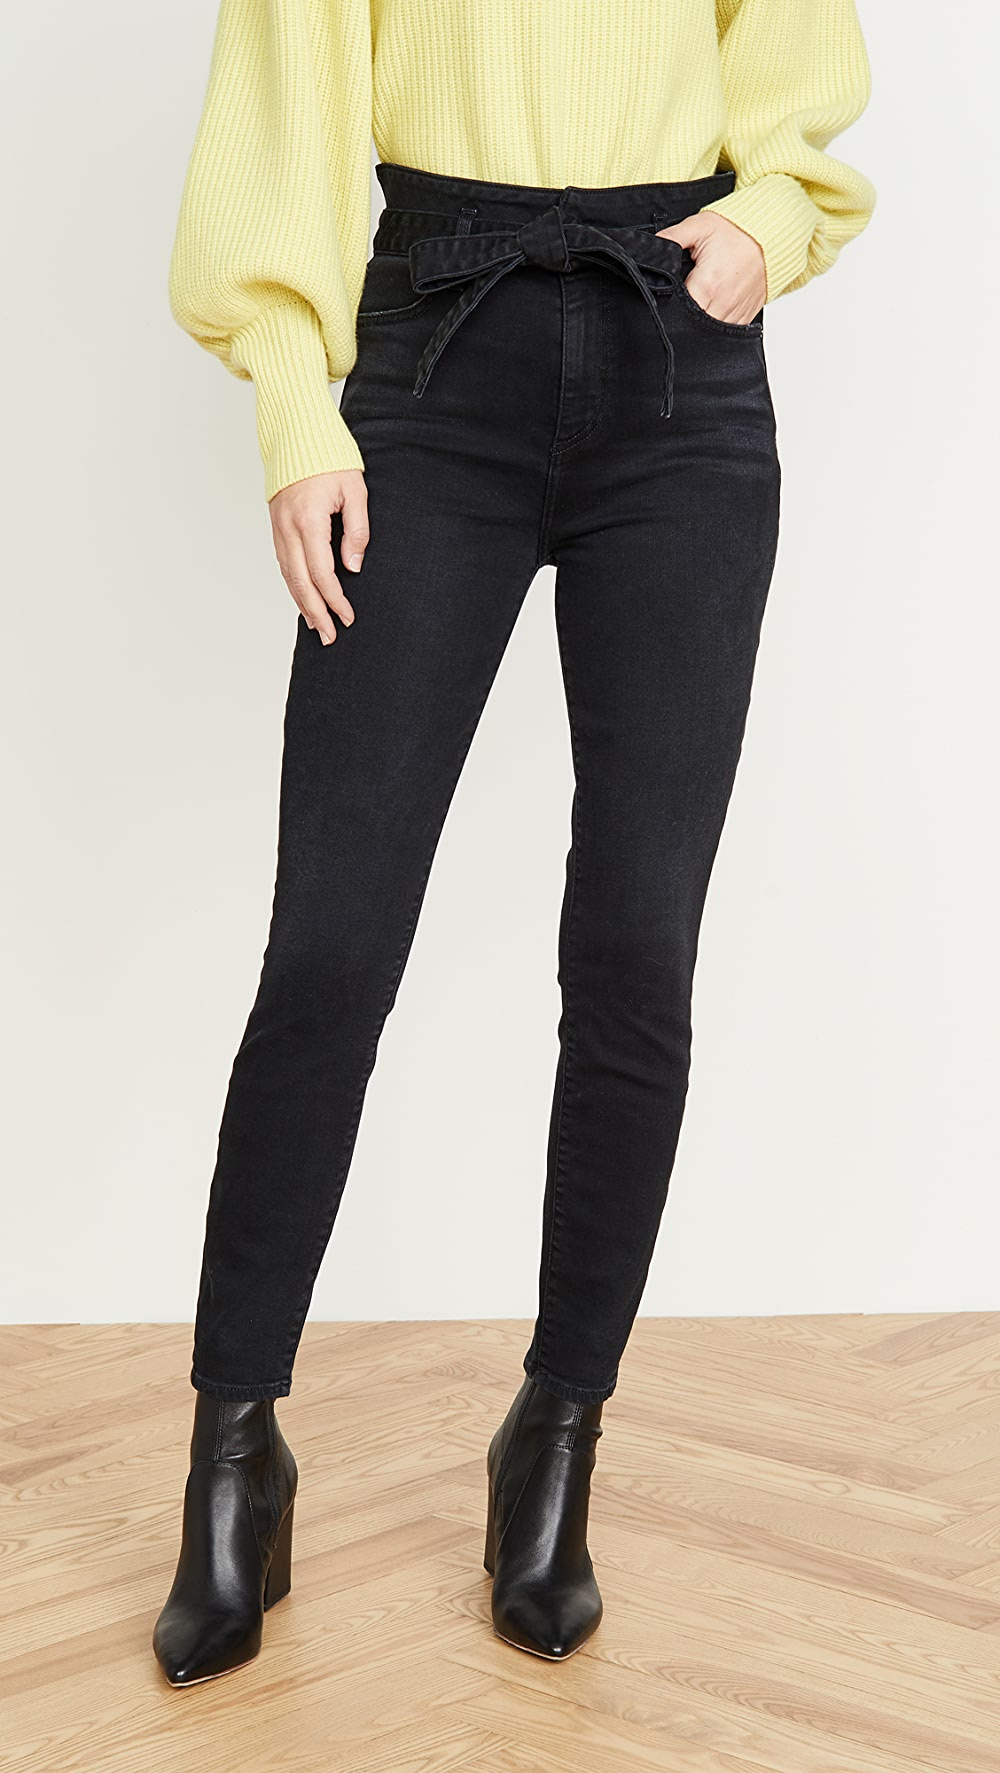 100% Quality Alice + Olivia Jeans - Good High Rise Skinny Jeans Pure Whiteness